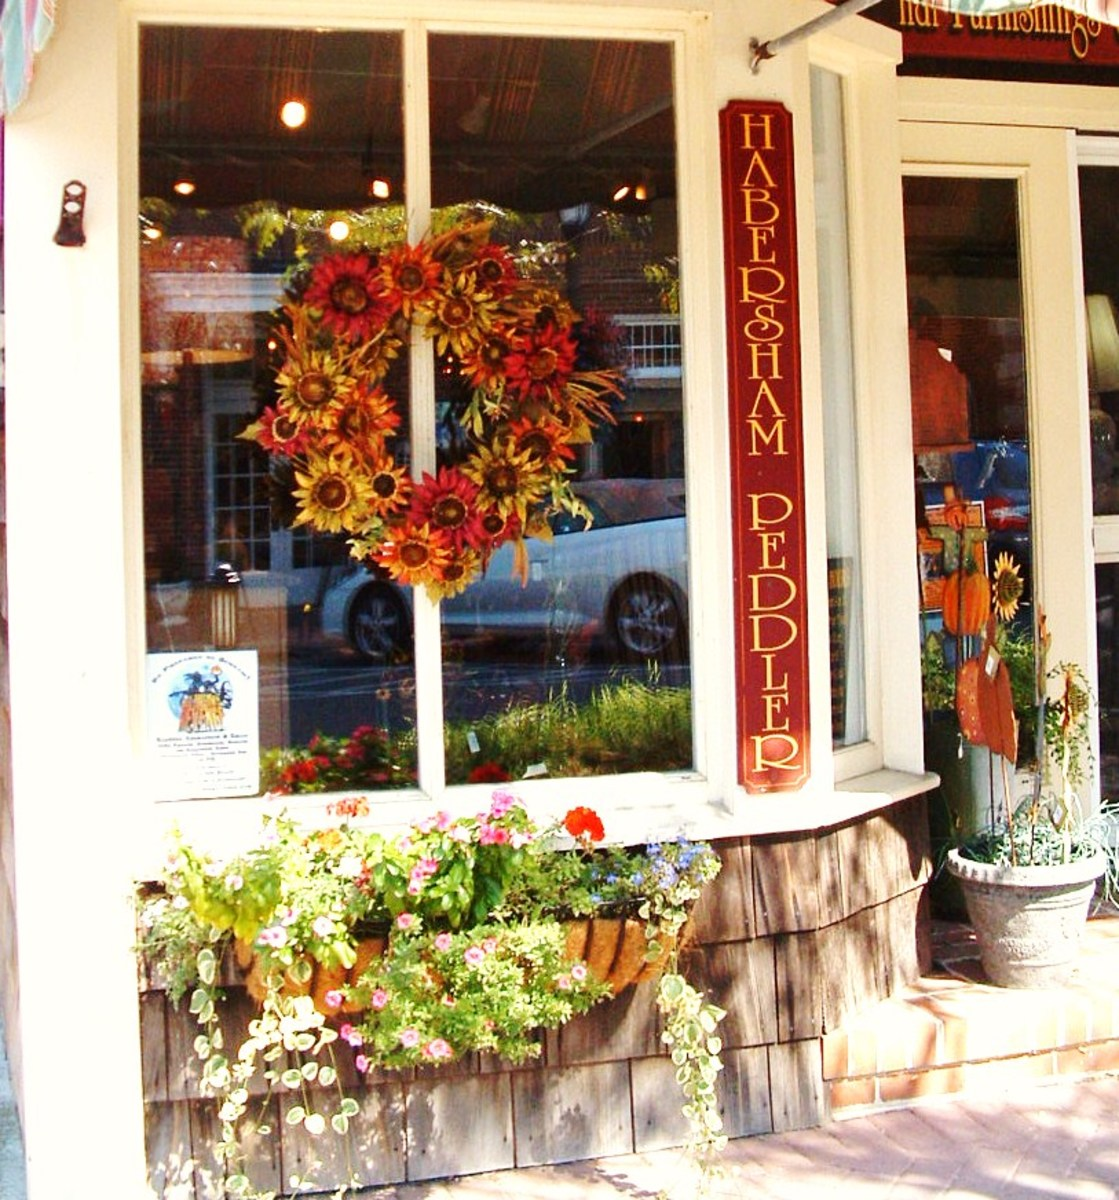 Habersham Peddlers Interiors sells fine furniture, gifts and finishing touches.